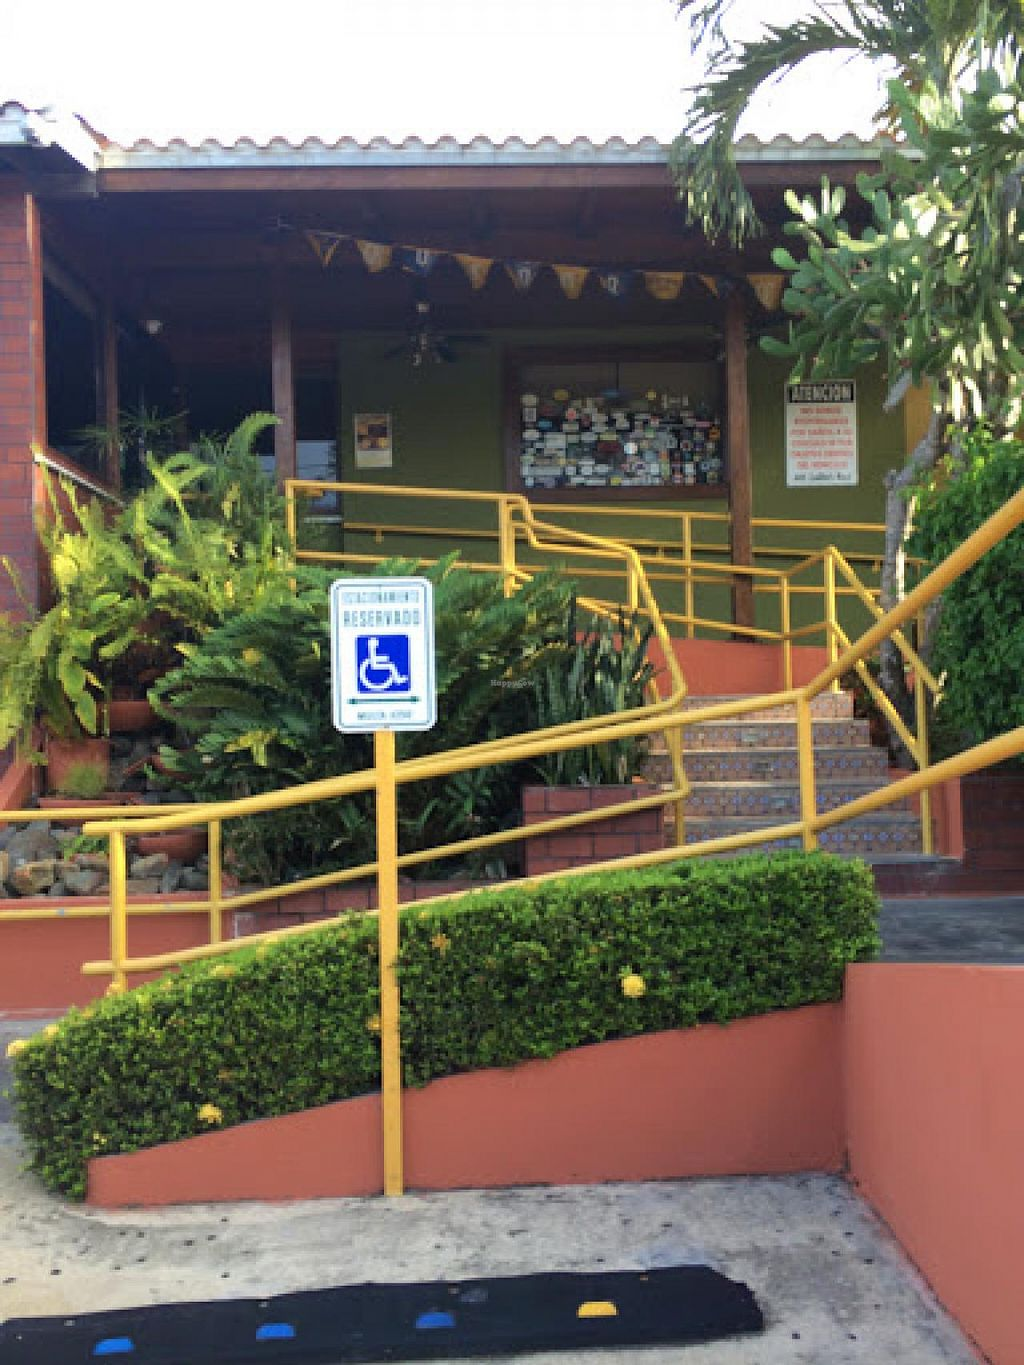 """Photo of Lolita's Mexican Restaurant  by <a href=""""/members/profile/Tamilyn"""">Tamilyn</a> <br/>Front side view, stairs to door <br/> August 10, 2014  - <a href='/contact/abuse/image/20787/76580'>Report</a>"""